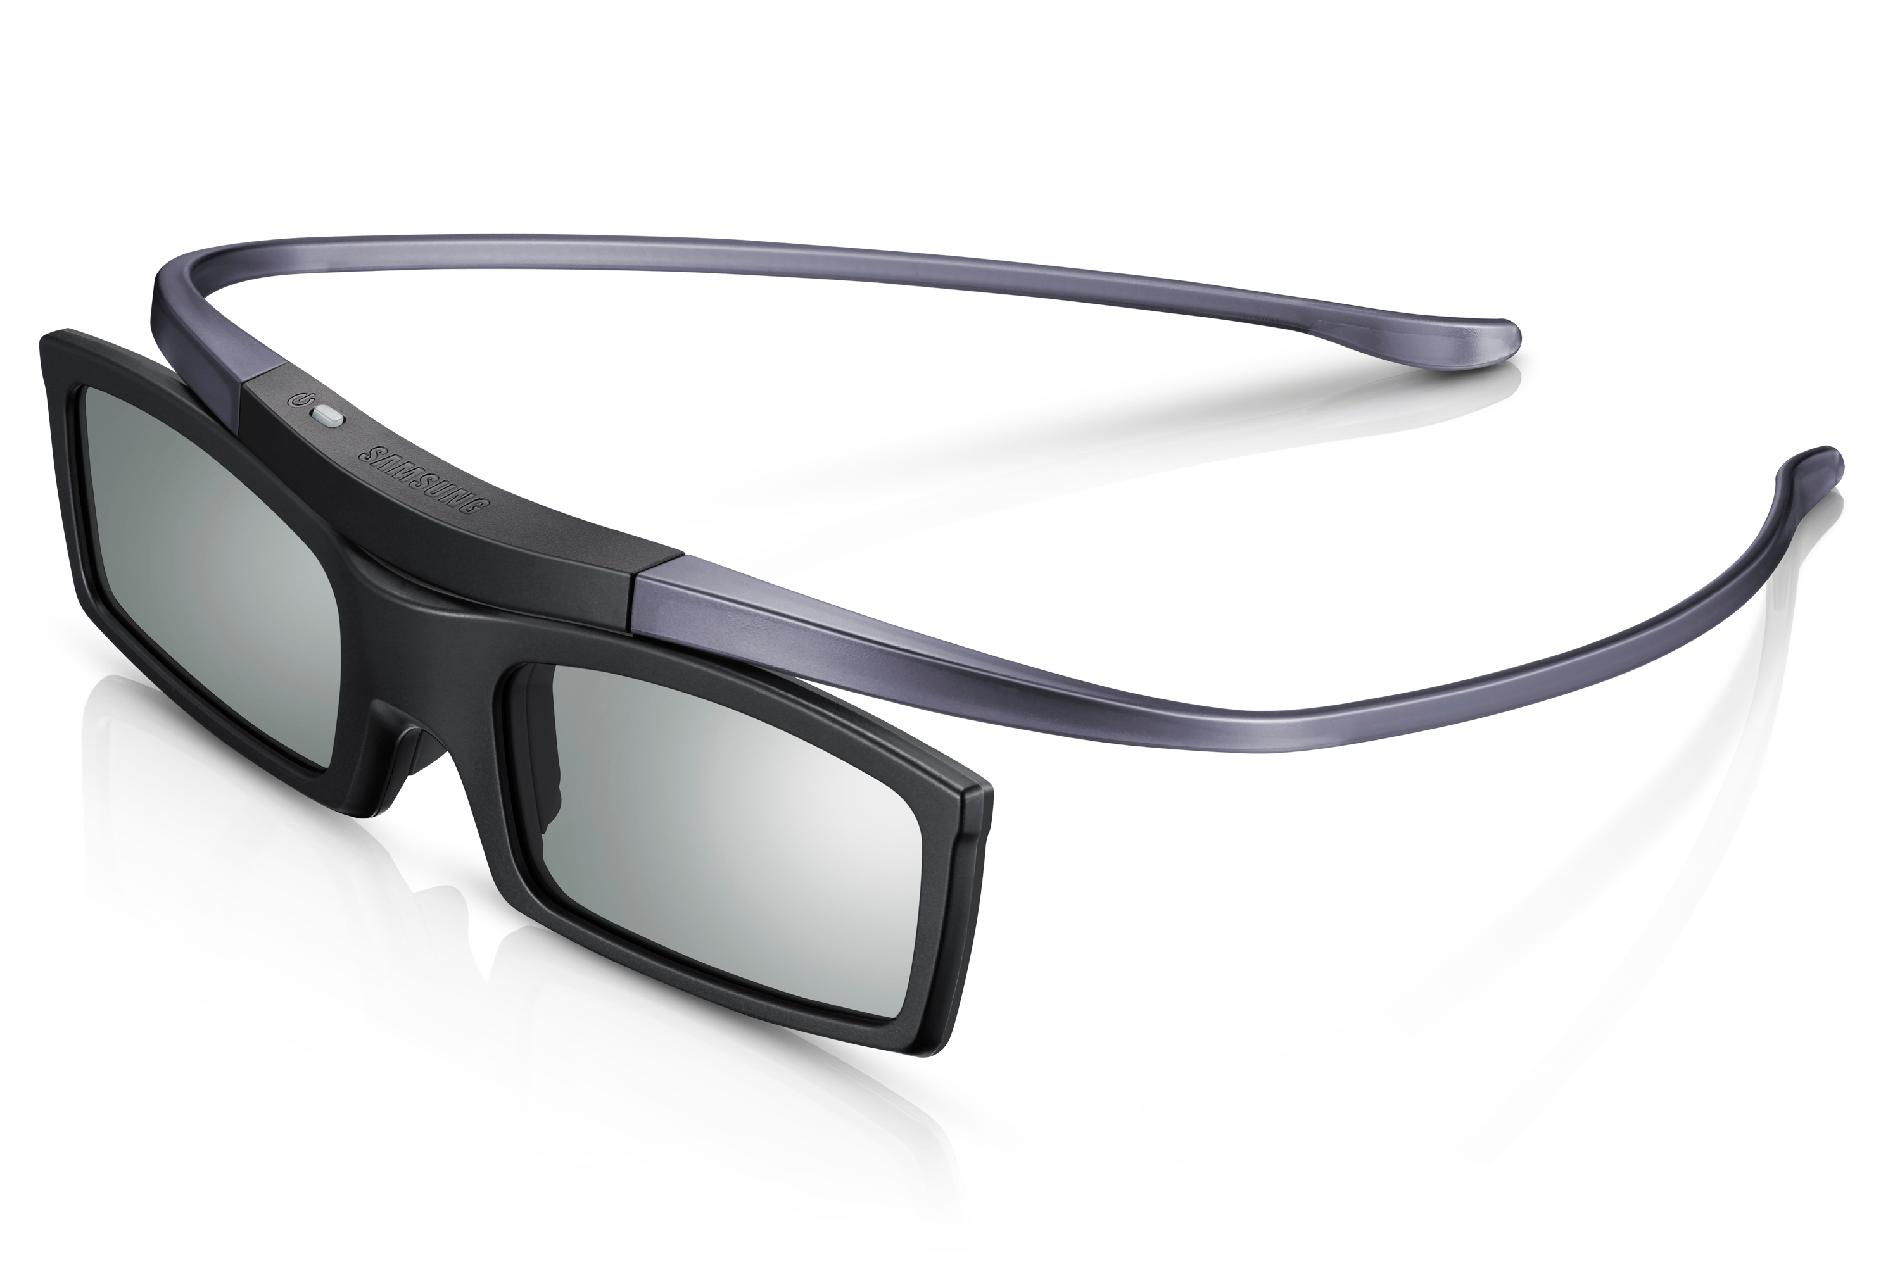 Samsung 3D Active Glasses